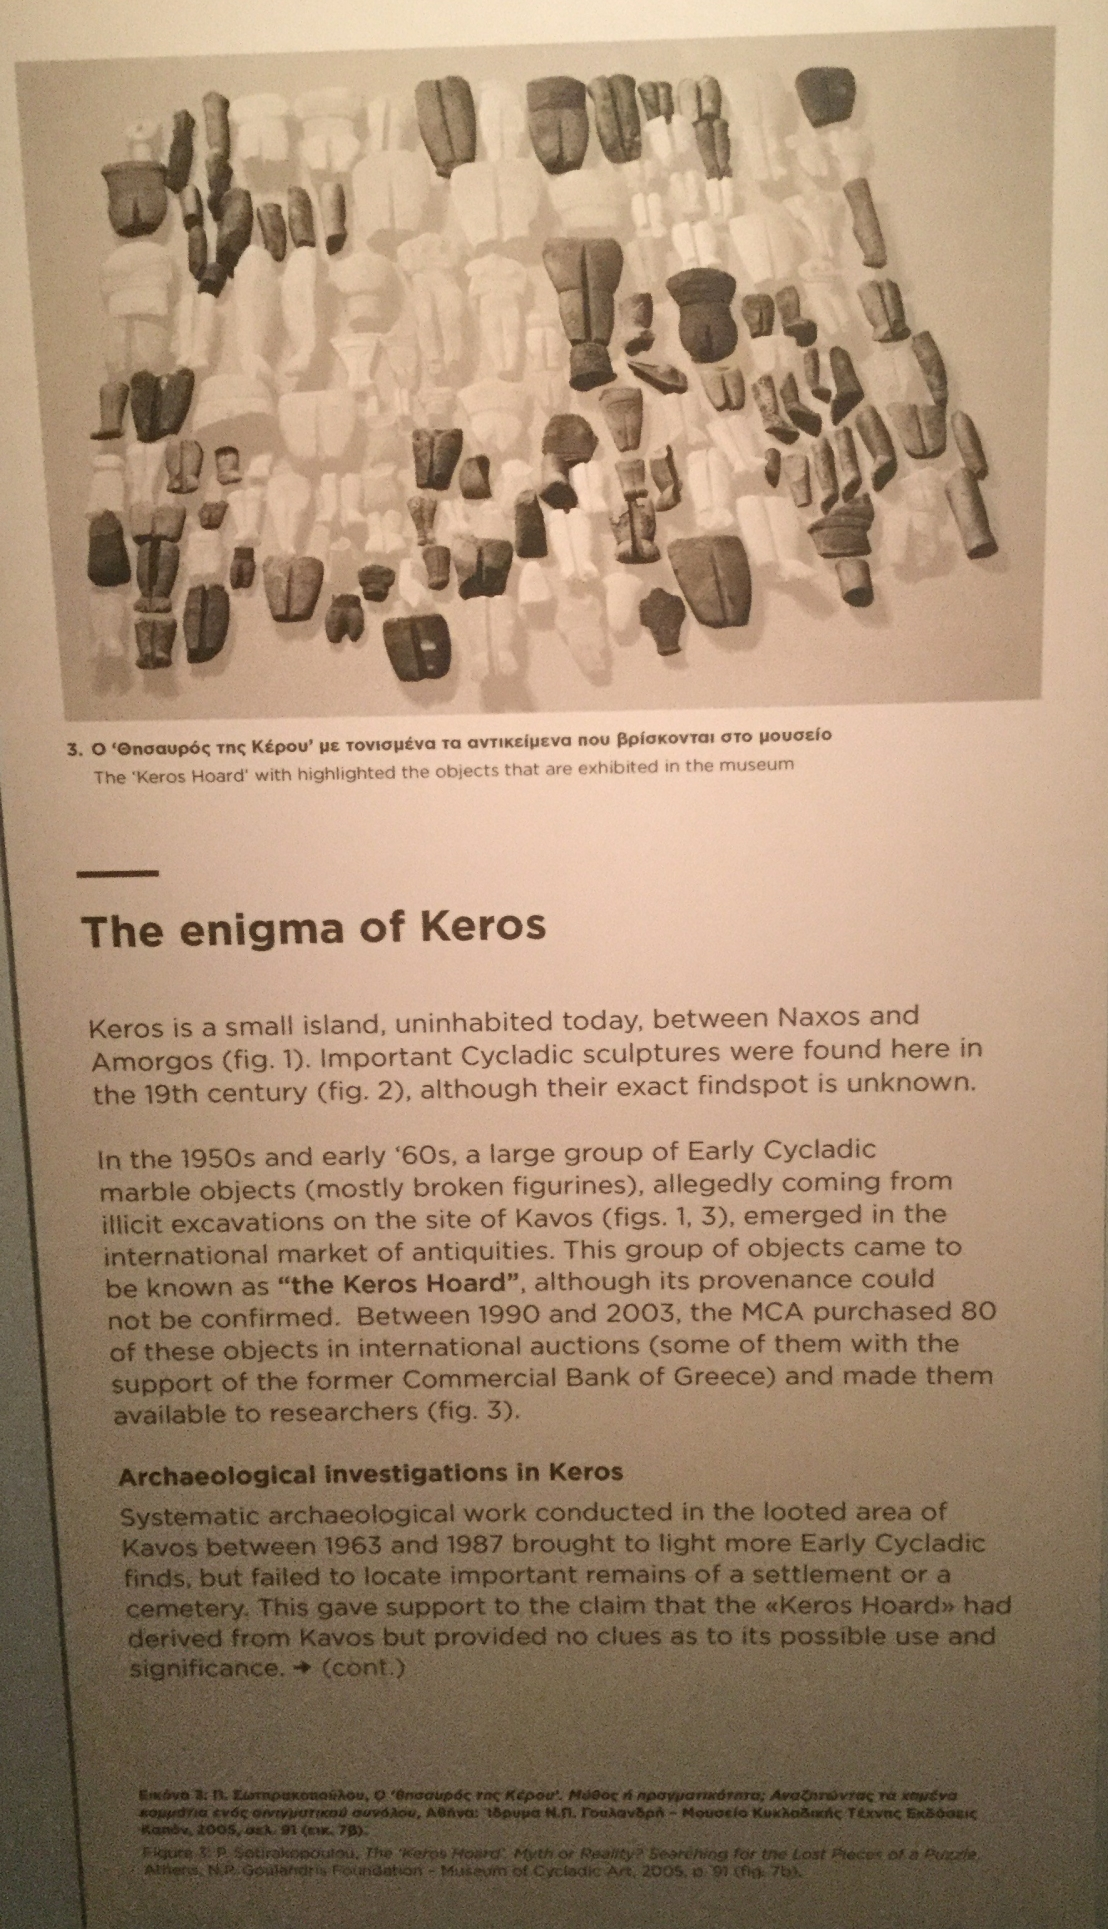 Enigma of Keros